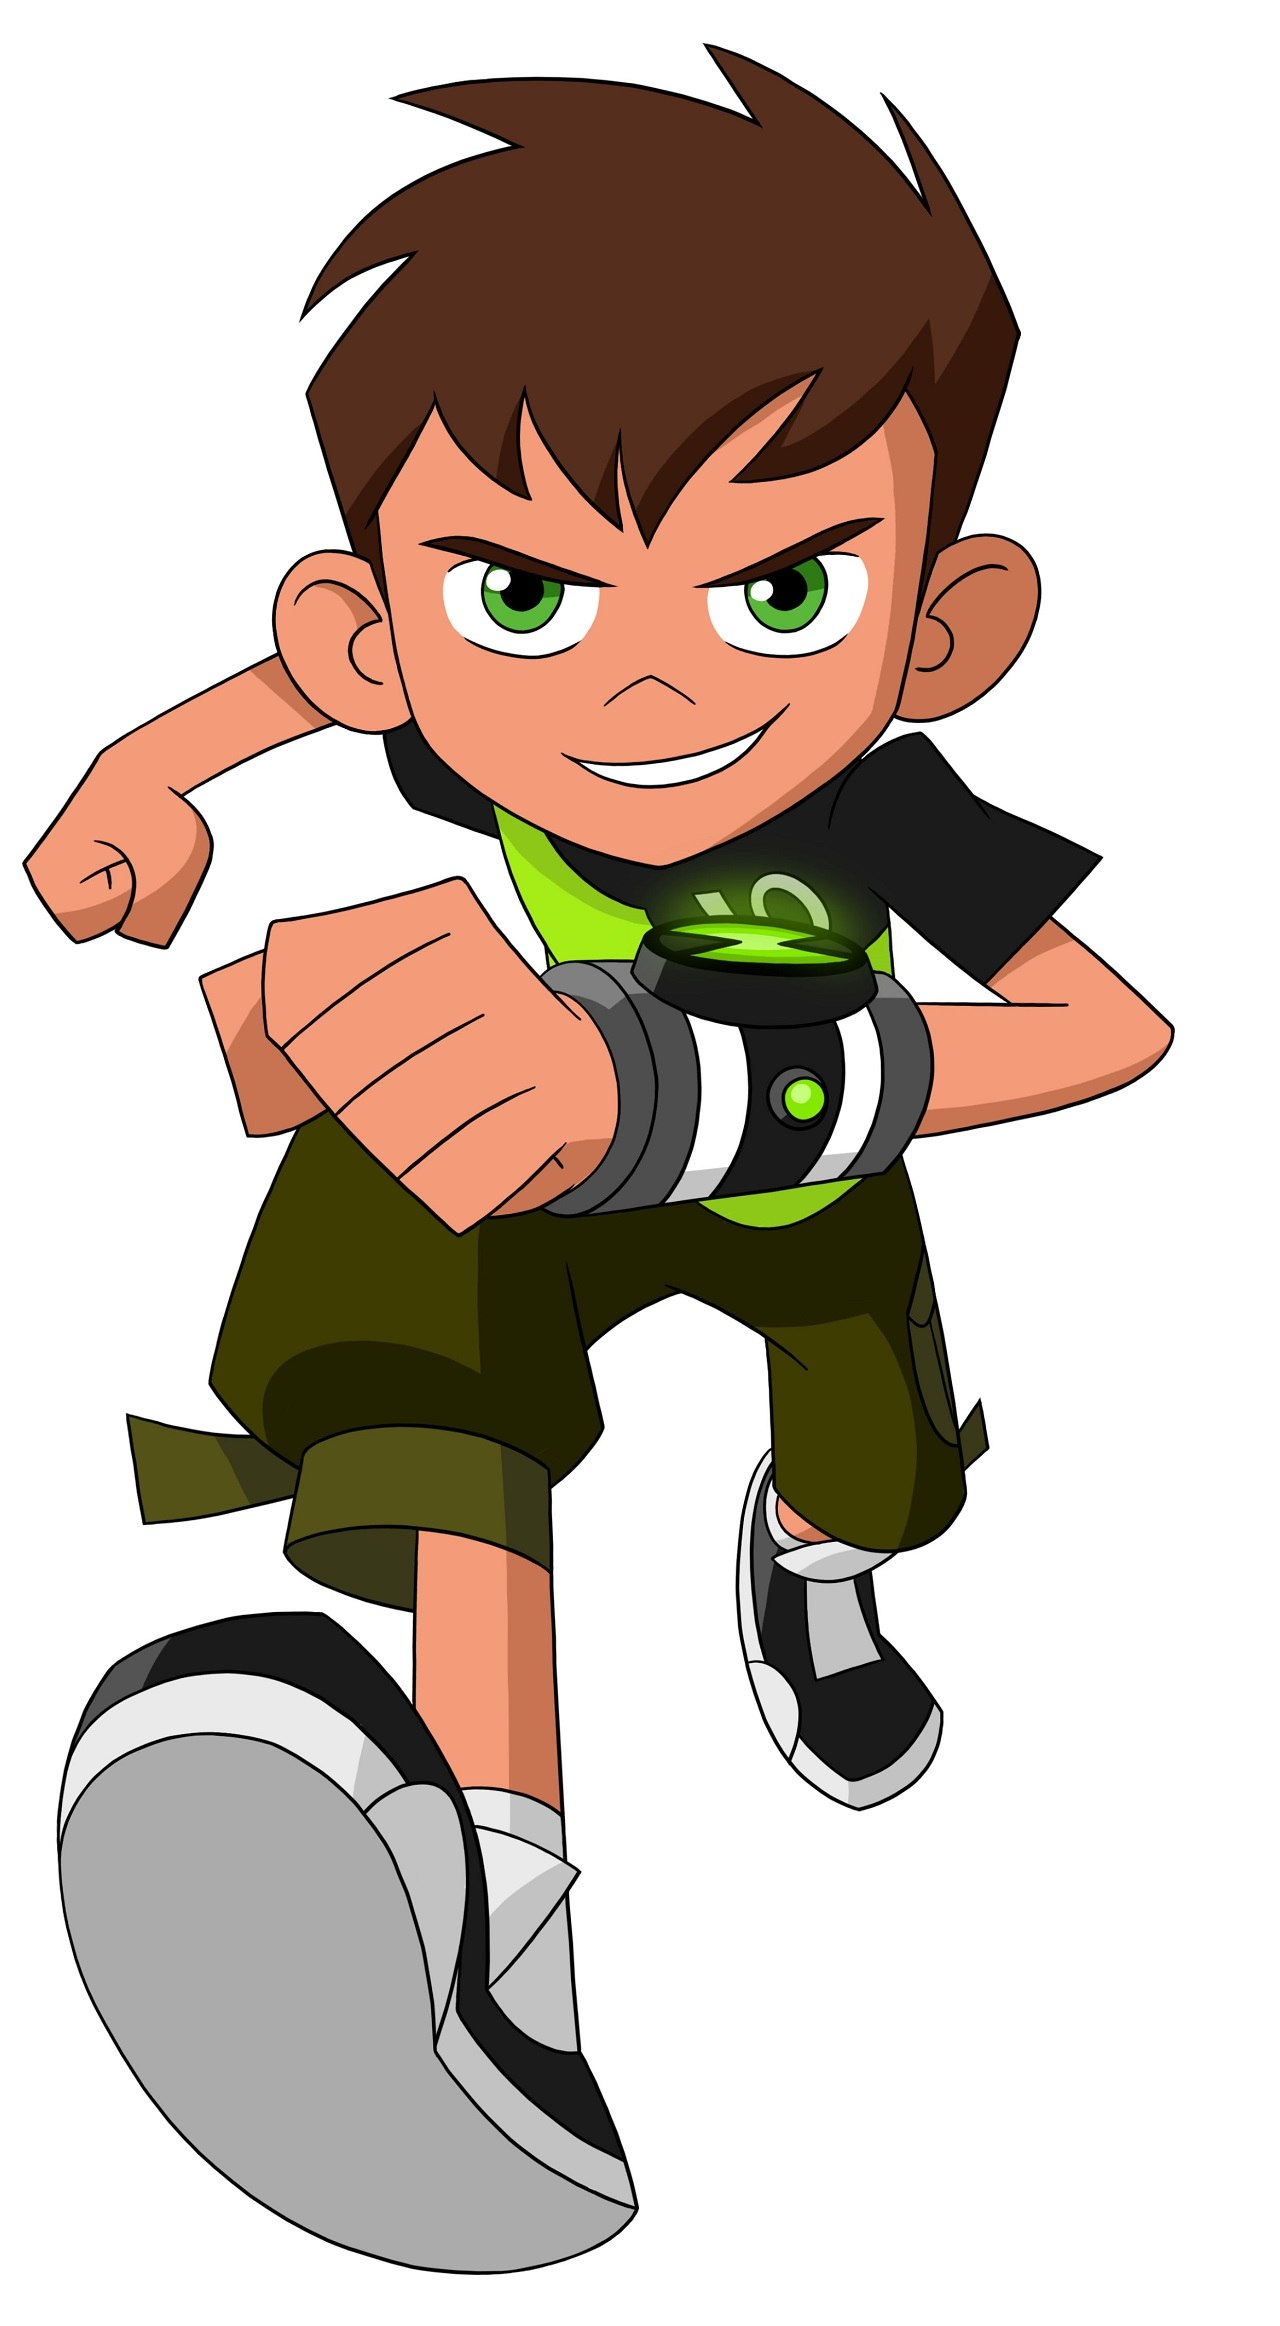 ben 10 ultimate alien all characters names